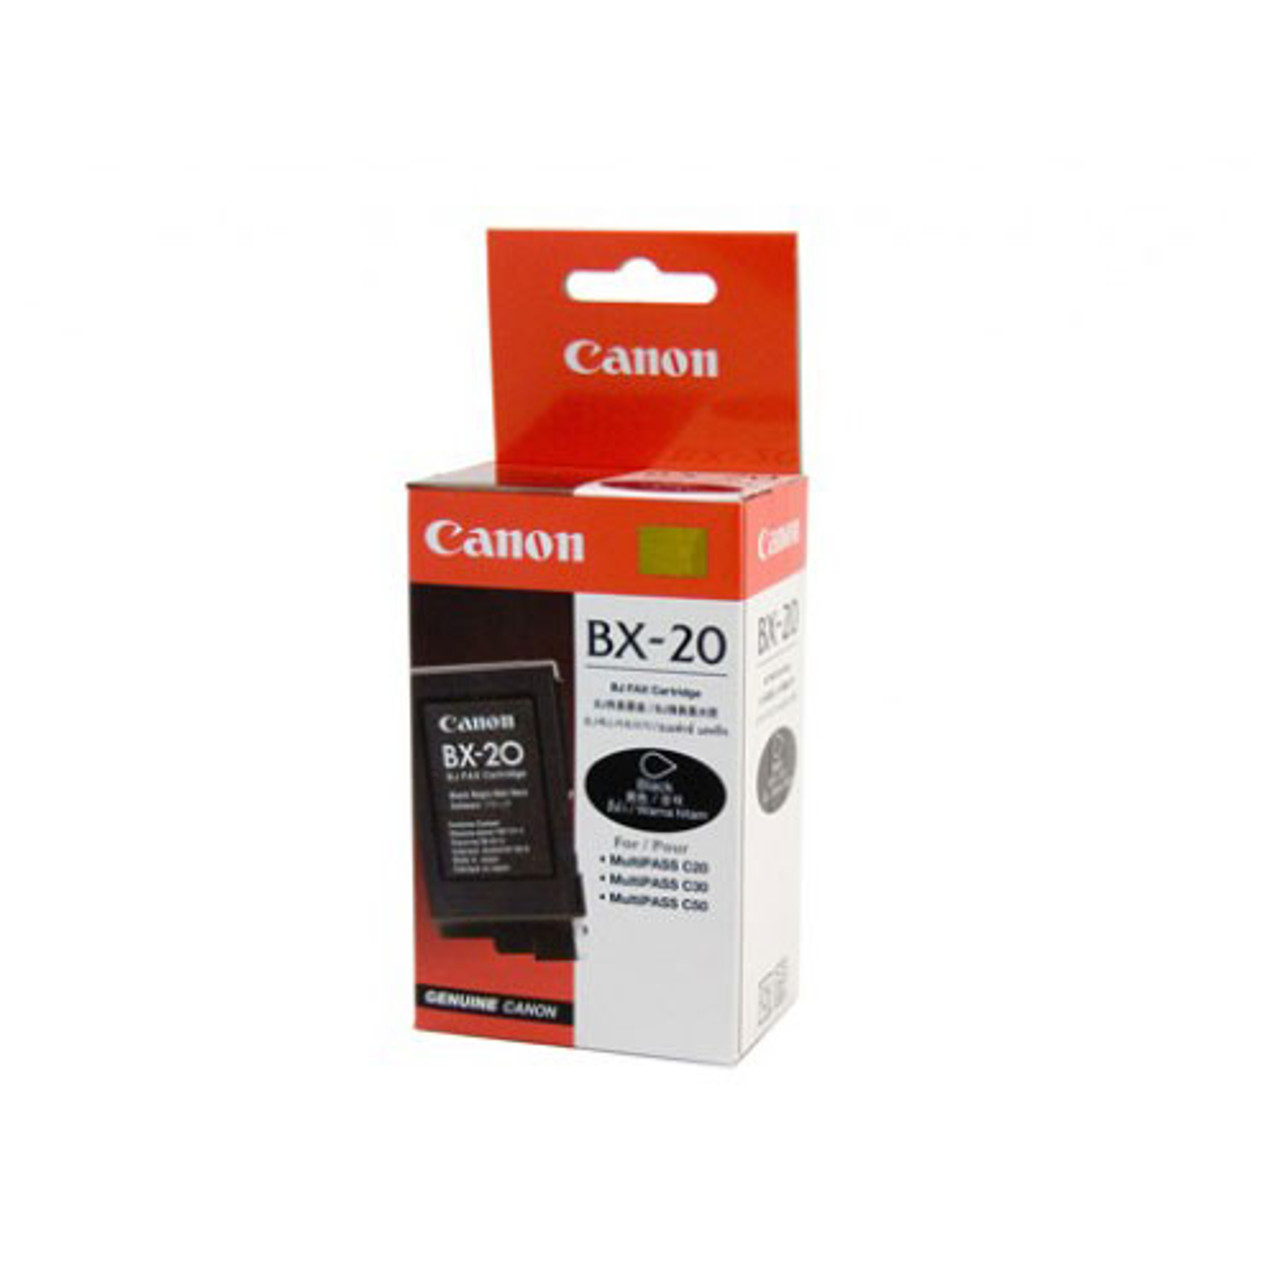 Image for Canon BX20 Fax Ink Cartridge 900 pages Black CX Computer Superstore